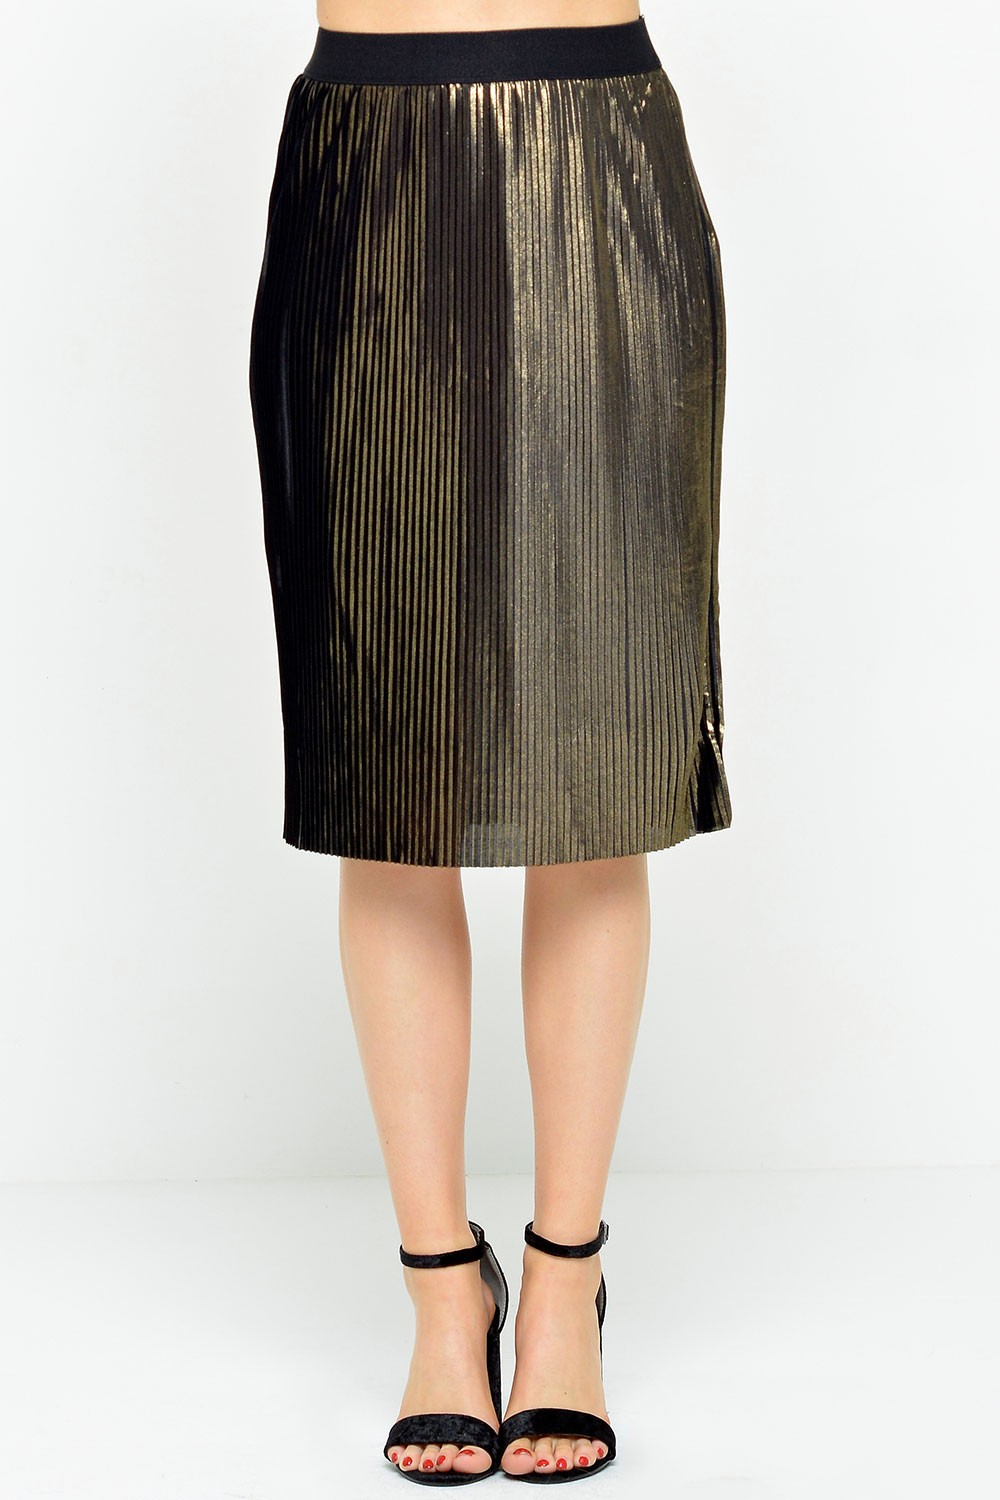 Vero Moda Pleat Skirt in Black and Gold